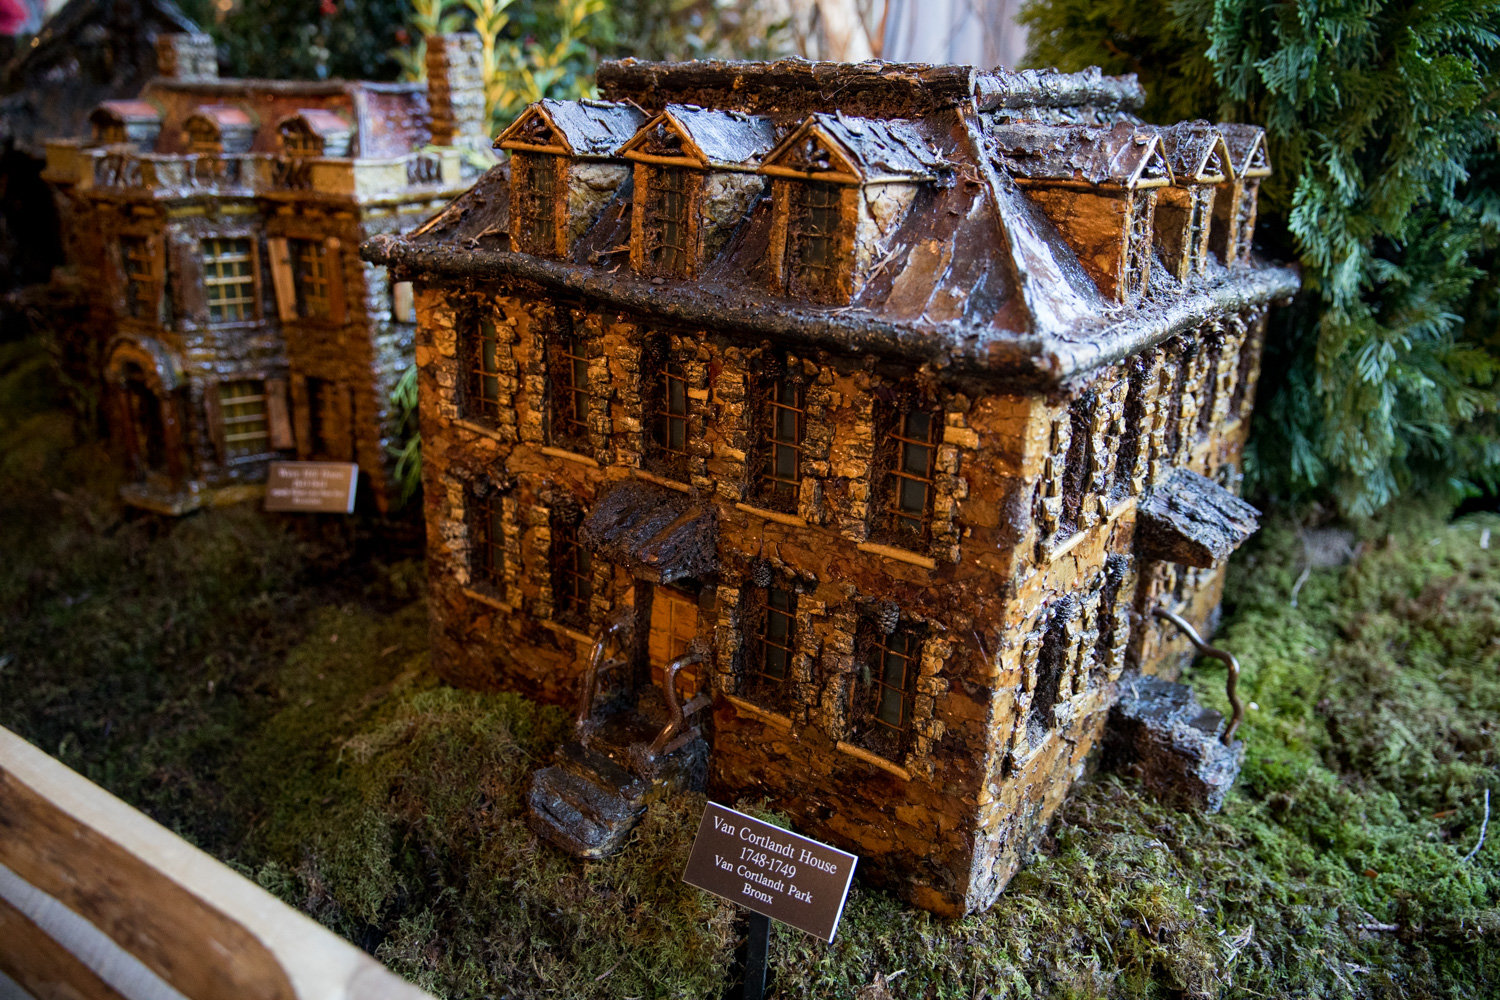 The Bronx section of the New York Botanical Garden's Holiday Train Show includes a replica of the Van Cortlandt House.